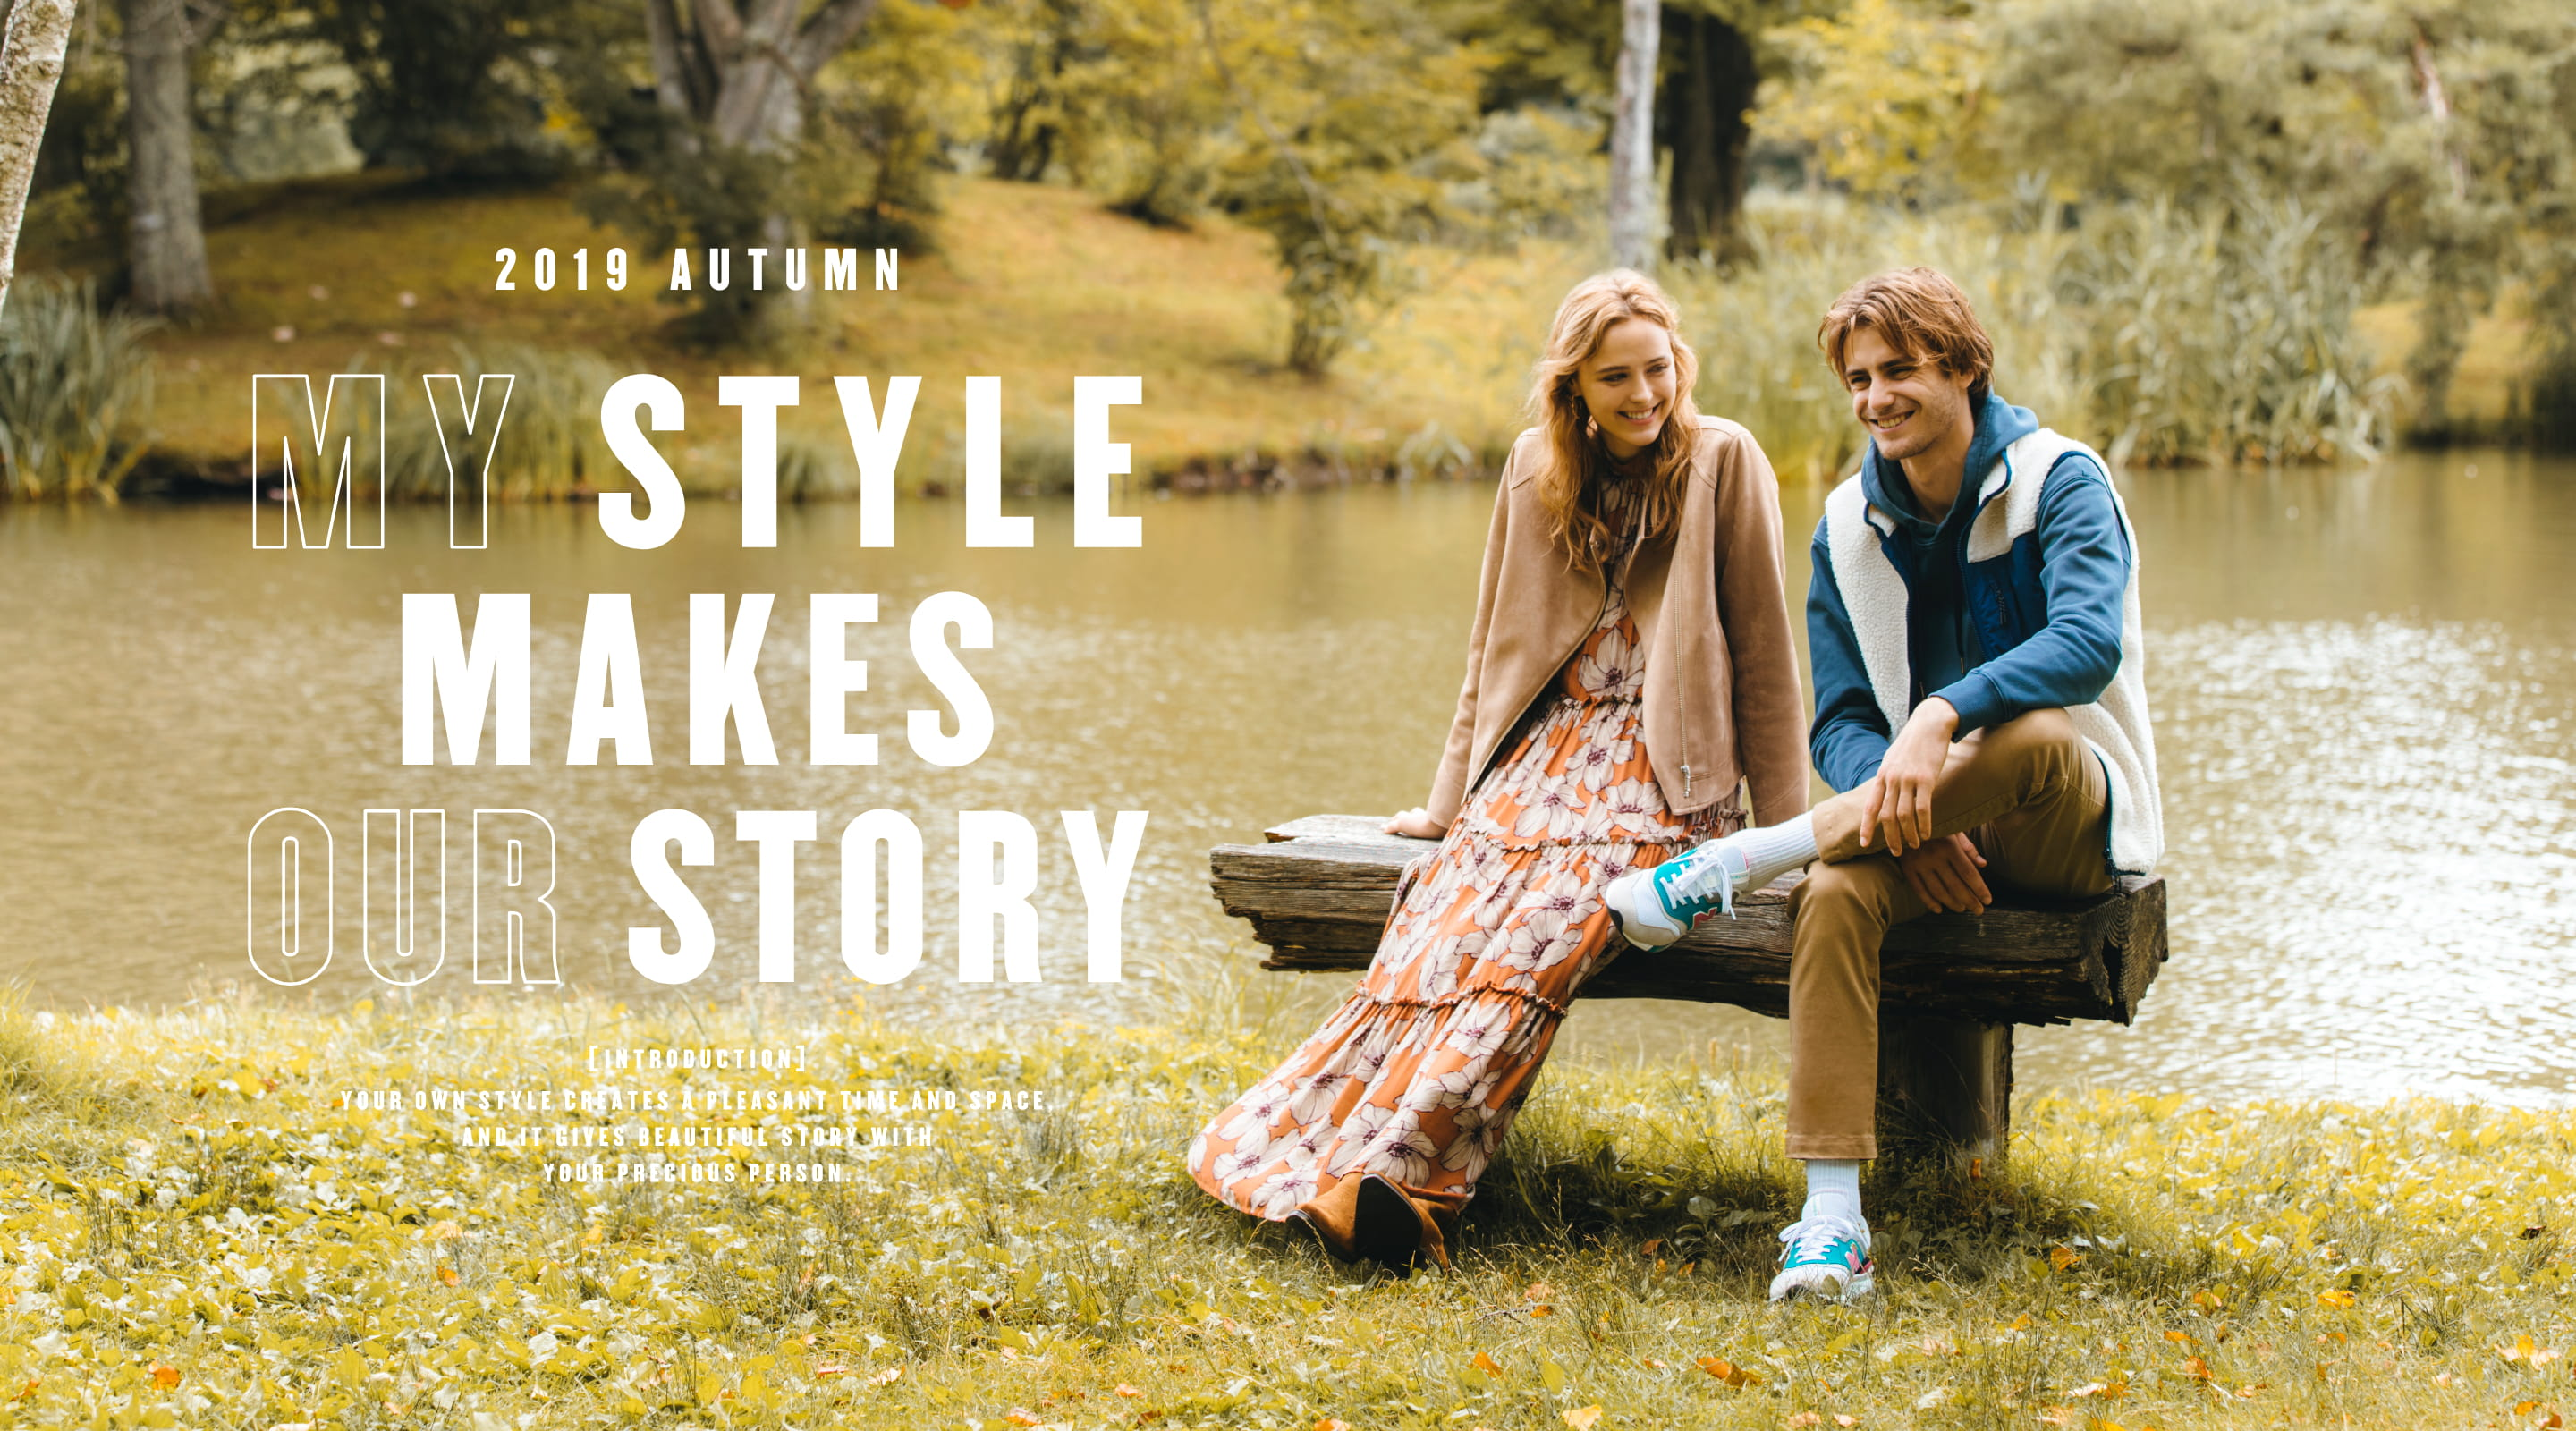 2019 AUTUMN MY STYLE MAKES OUR STORY